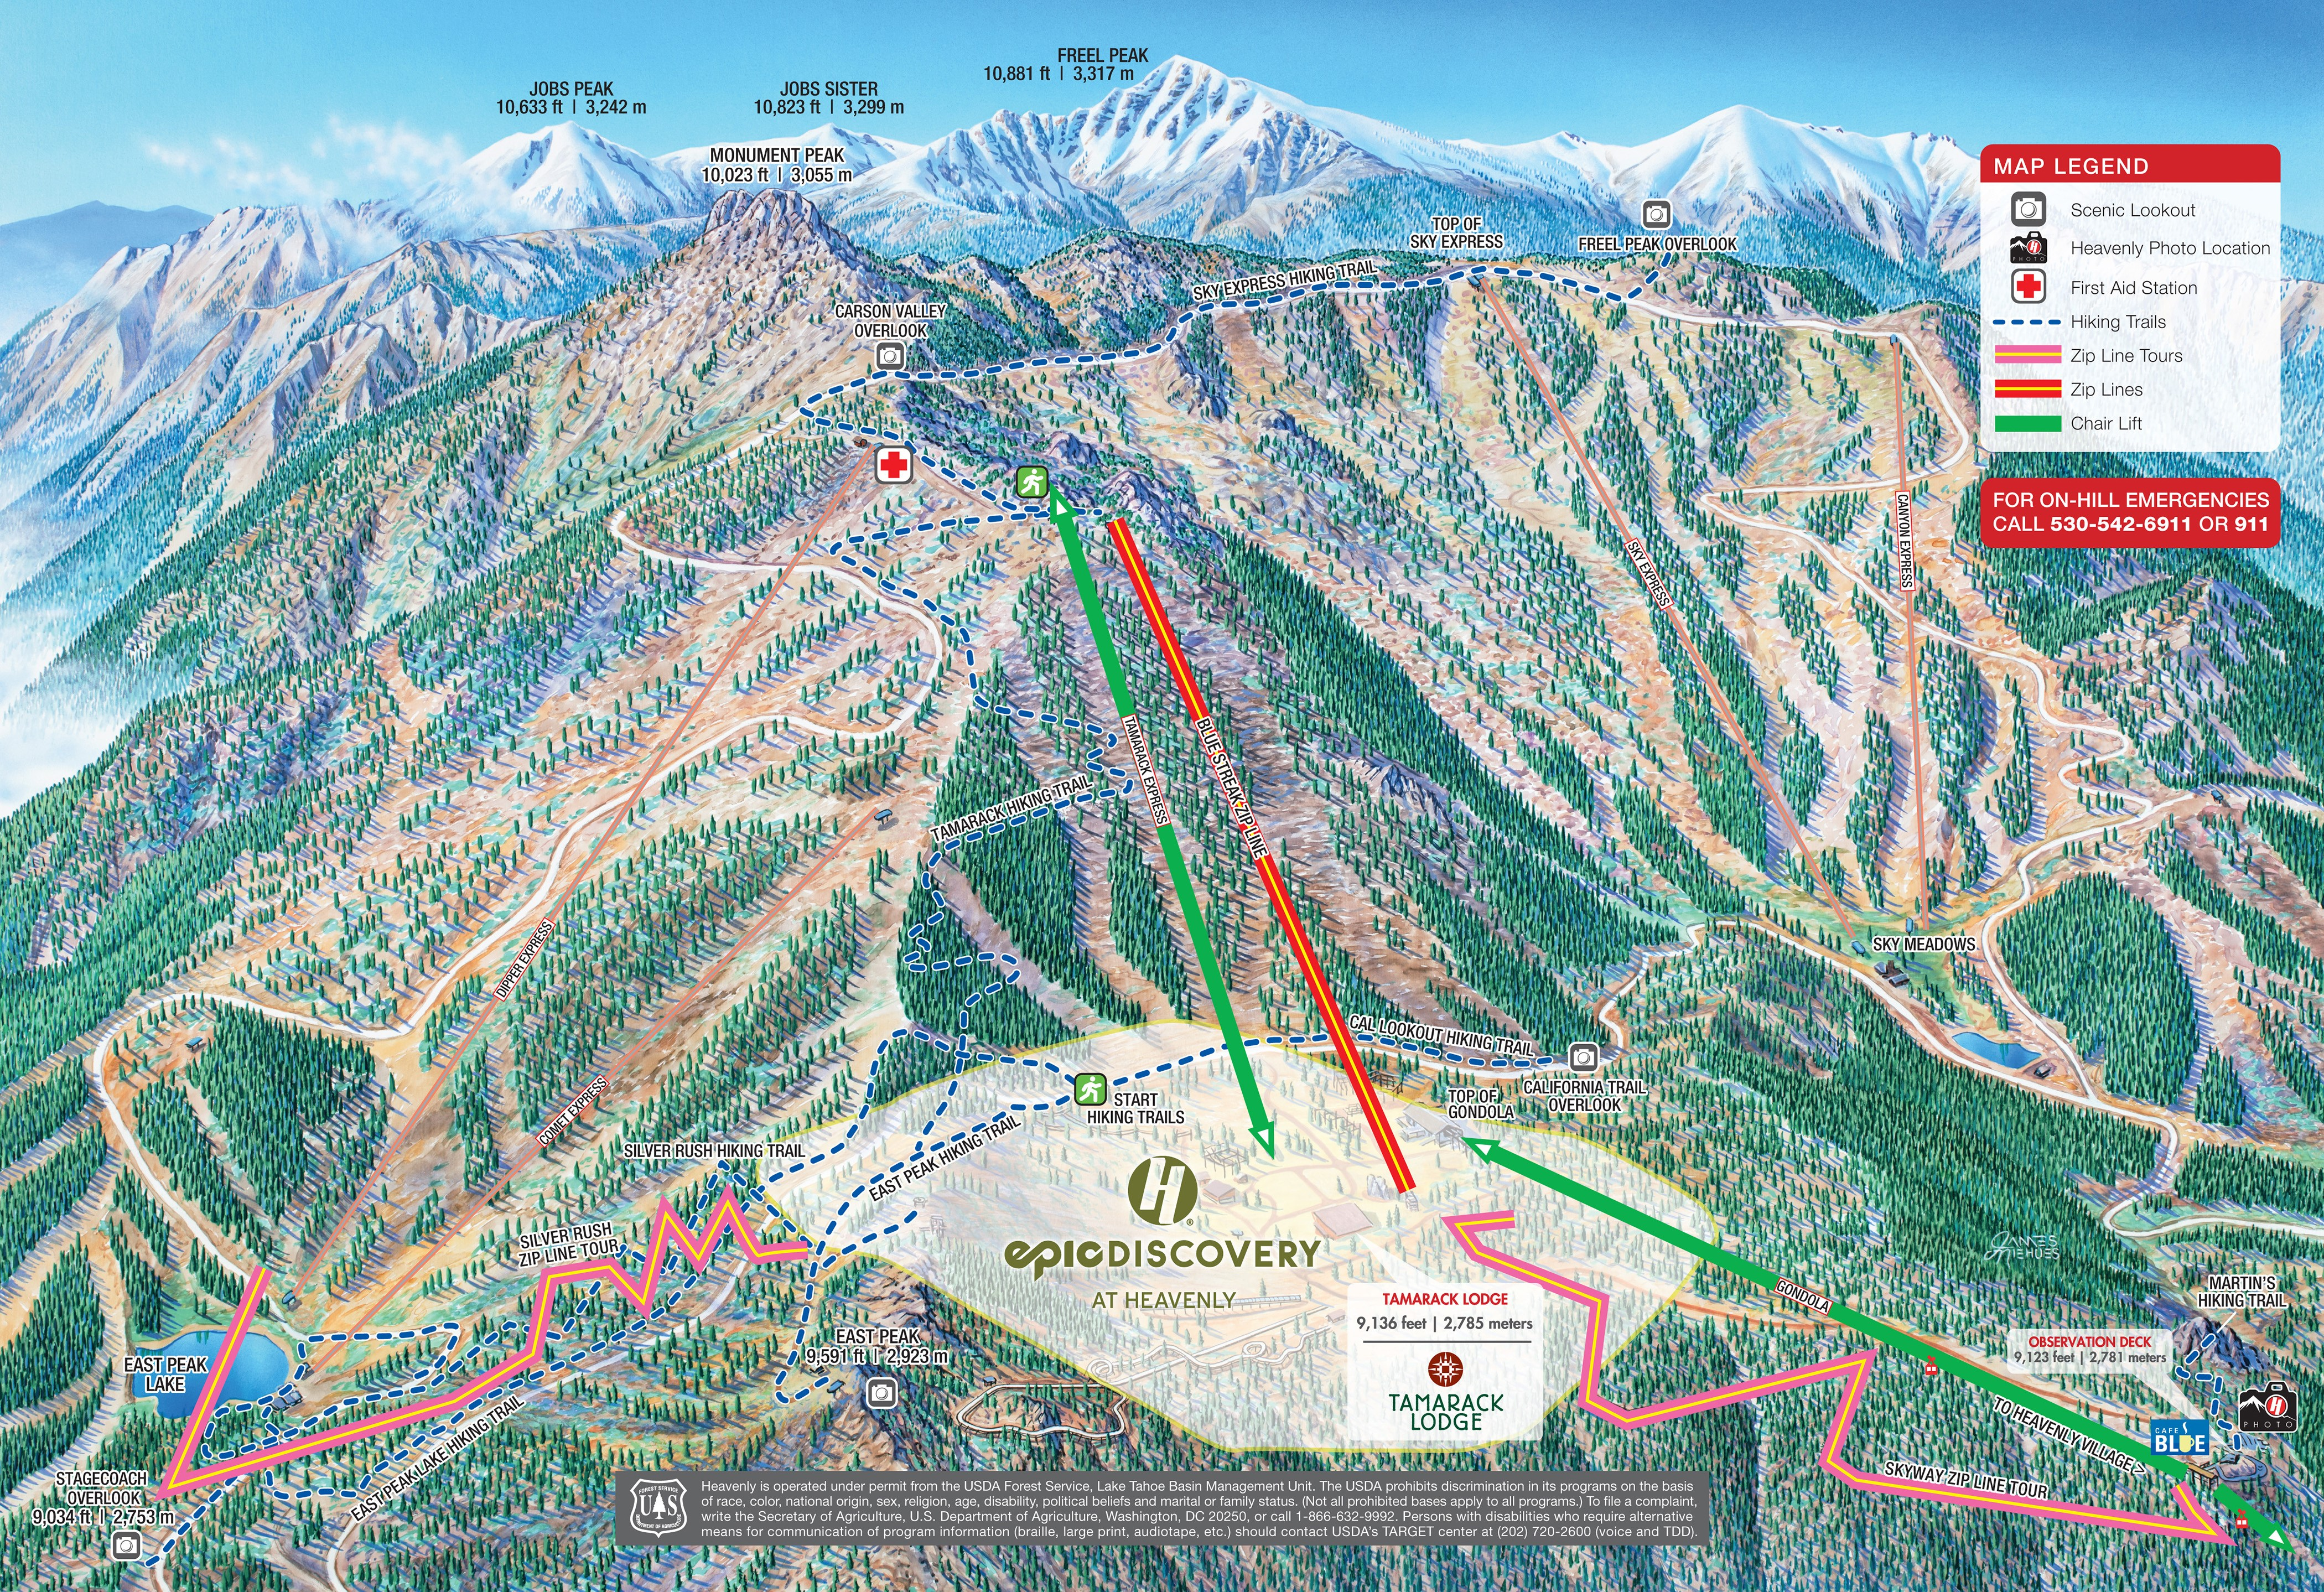 Trail Maps | Heavenly Ski Resort on vail bus map, vail hotel map, vail lifts, vail skiers, vail school district map, vail colorado map, vail aspen map, vail valley map, winter park village resort map, vail webcams, vermont ski resorts map, vail lodging map, vail street map, vail mountain map, vail weather, downtown vail map, vail cascade resort map, vail walking map, stratton mountain resort map, eldora mountain resort map,